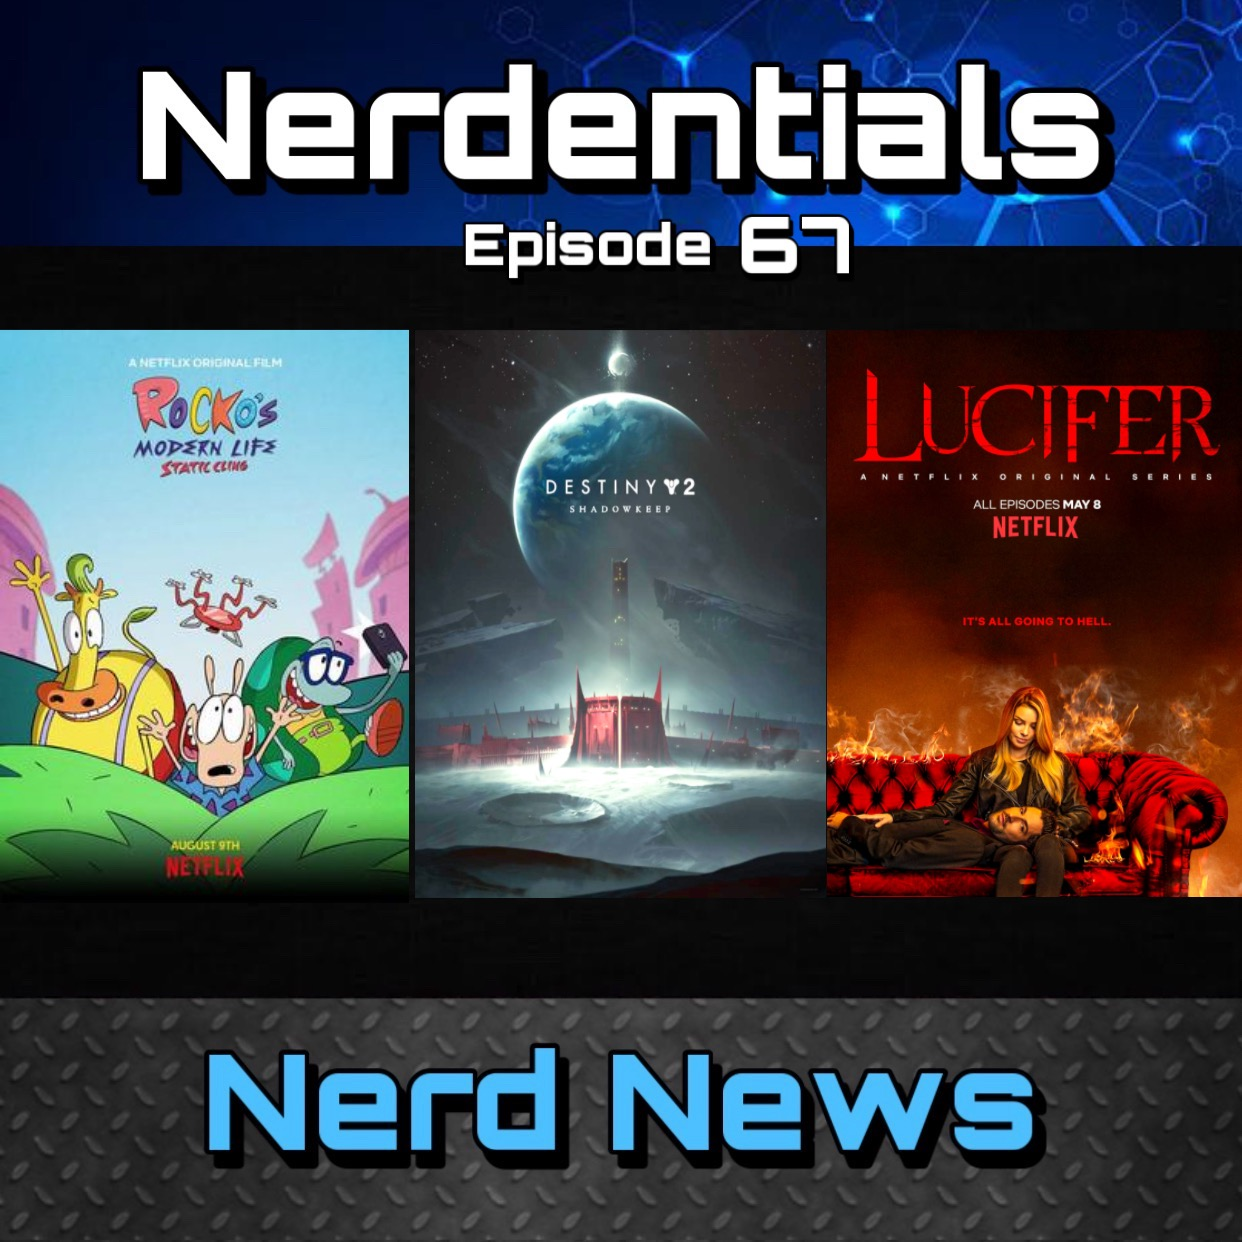 - Welcome to Nerdentials! Your weekly dose of the nerdy essentials. Covering Film, TV, Video Games and Comics.This week your nerd hosts Joe, Lynn and Nick cover all 3 segments! First up its Movie Matters. Nick and Lynn give us their review on the Netflix Original Movie, Rocko's Modern Life: Static Cling.Then in TV Talk...Nick and Joe recap their feelings on the first 3 seasons of Fox's Lucifer. Then give a full, very spoiler-tastic review of Season 4, that was picked up by Netflix.Finishing off this weeks episode in Gaming Bits...Lynn kicks off a few points regarding the gaming industry. Bioware's Future with Anthem and Bungie's future with Destiny now that they are an independent studio.